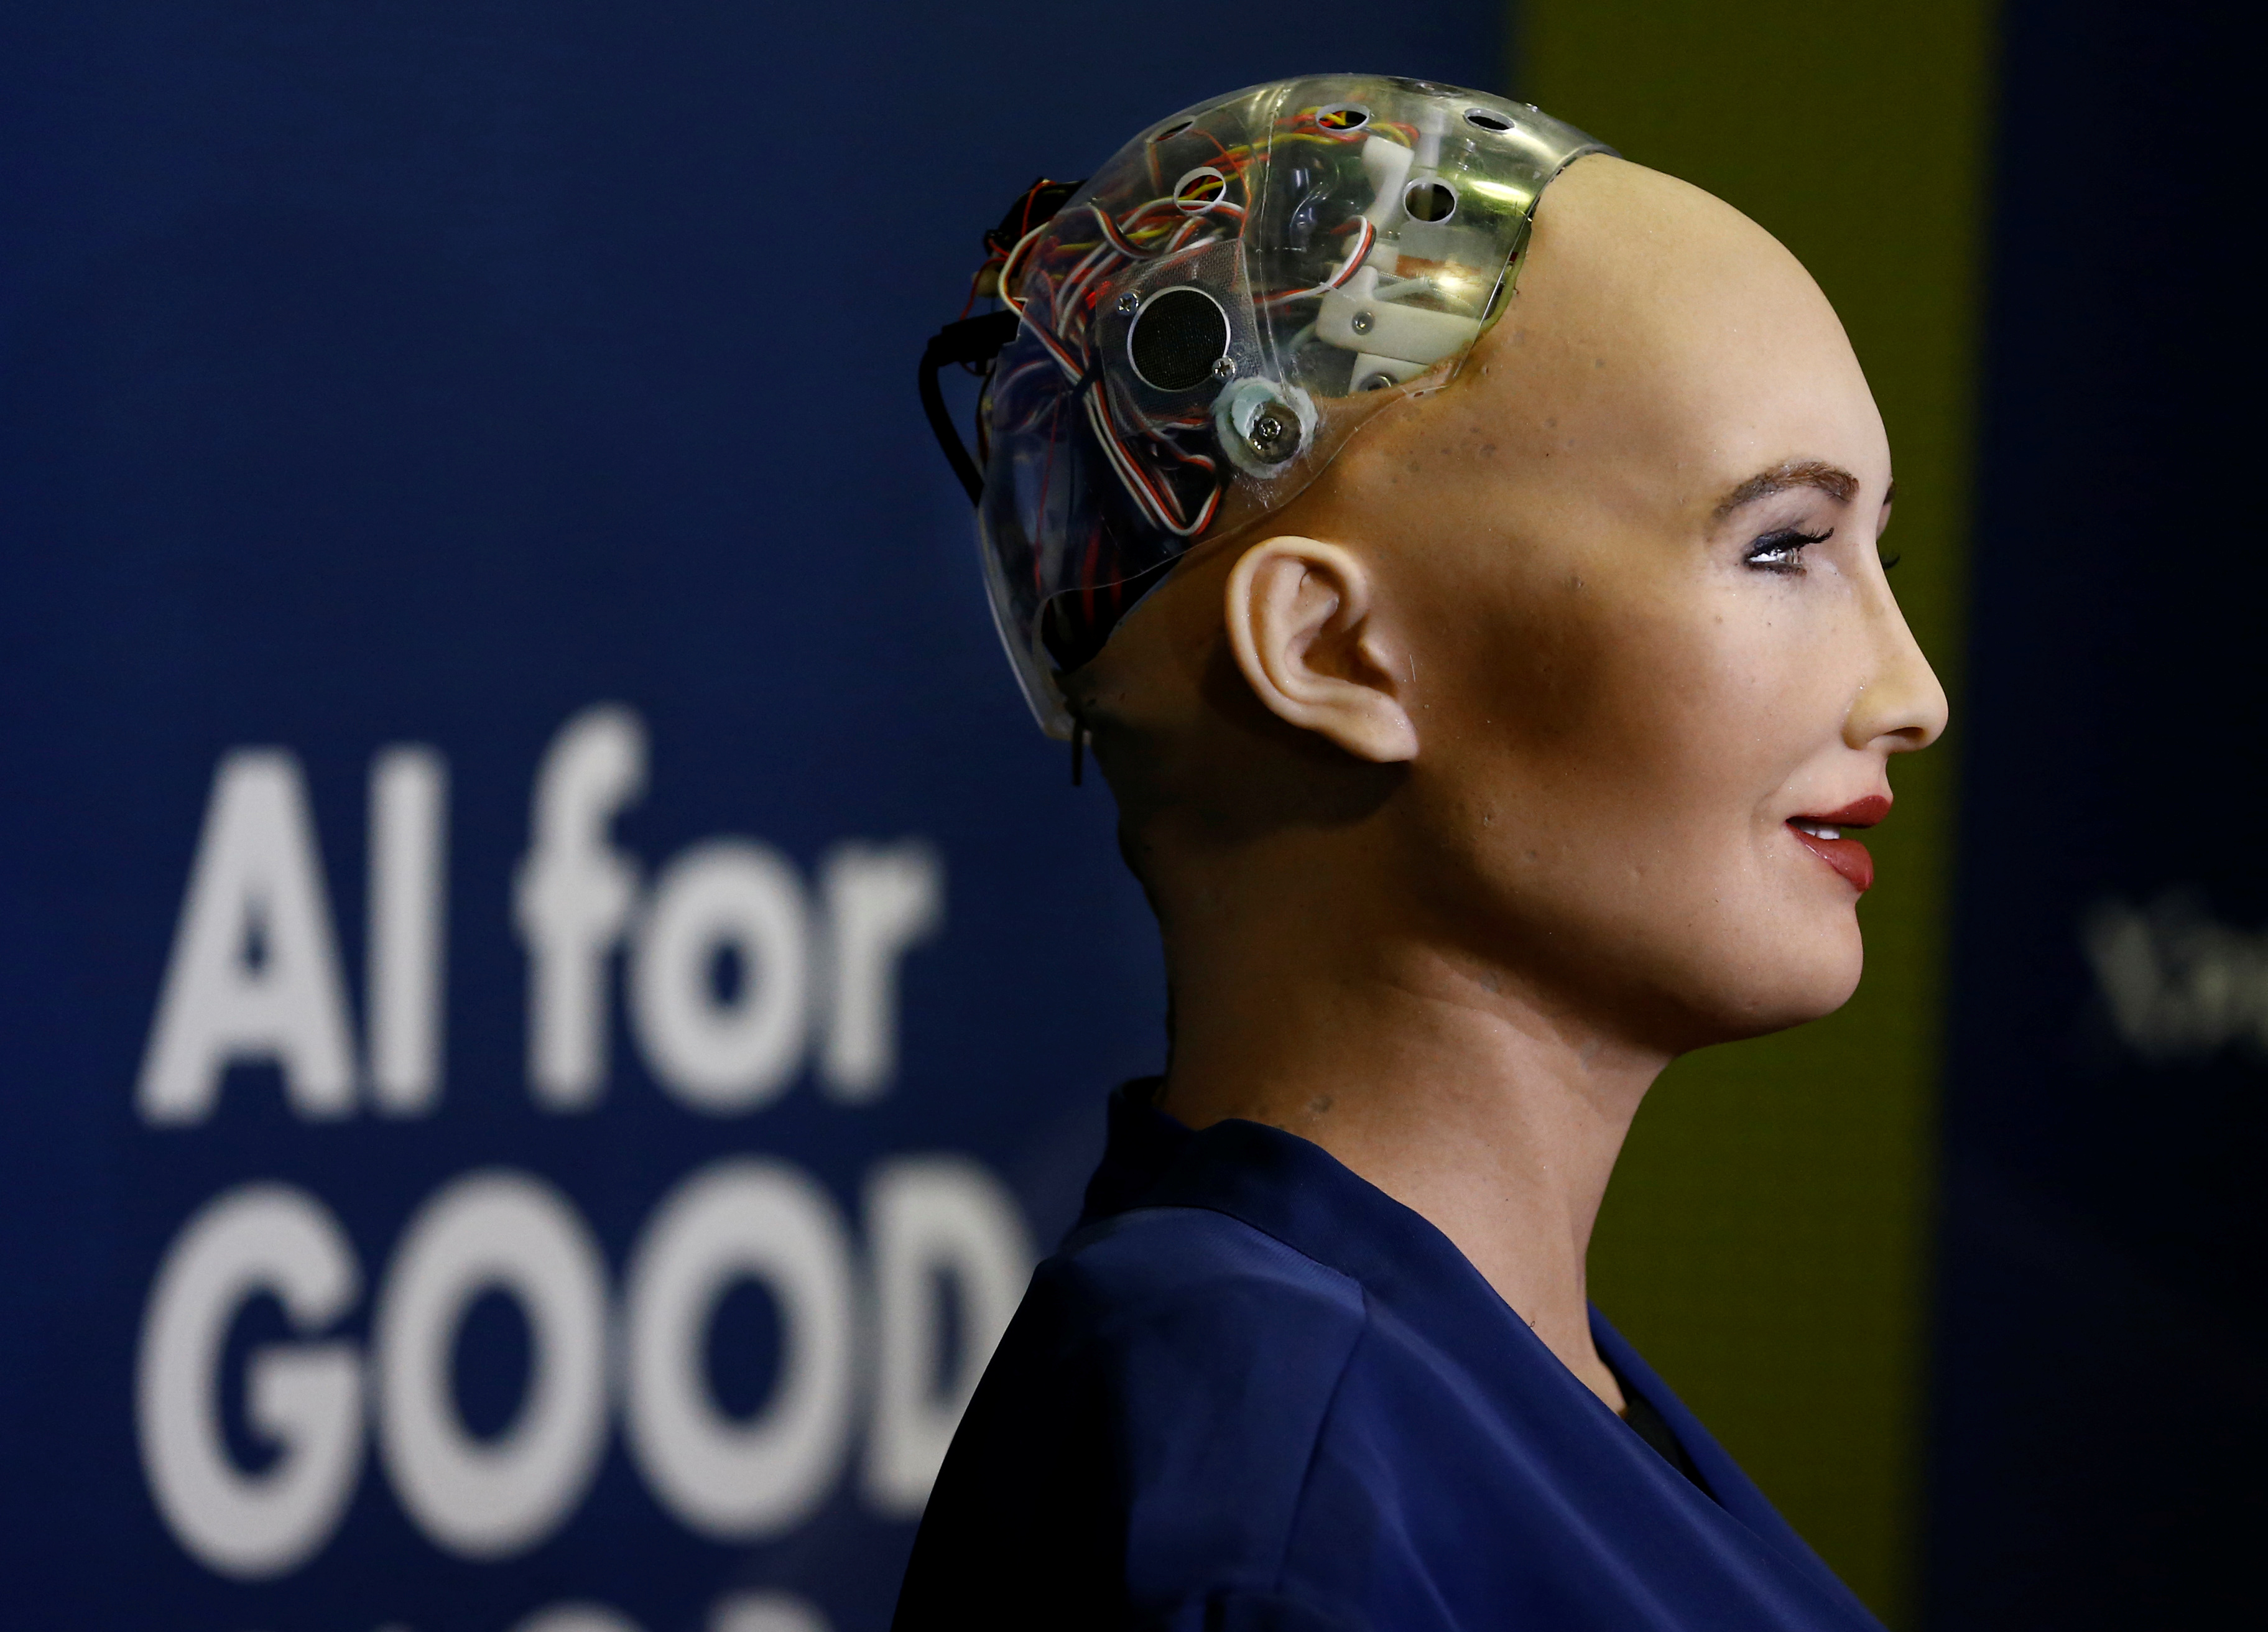 """Sophia, a robot integrating the latest technologies and artificial intelligence developed by Hanson Robotics is pictured during a presentation at the """"AI for Good"""" Global Summit at the International Telecommunication Union (ITU) in Geneva, Switzerland June 7, 2017. REUTERS/Denis Balibouse - RC161DD14970"""